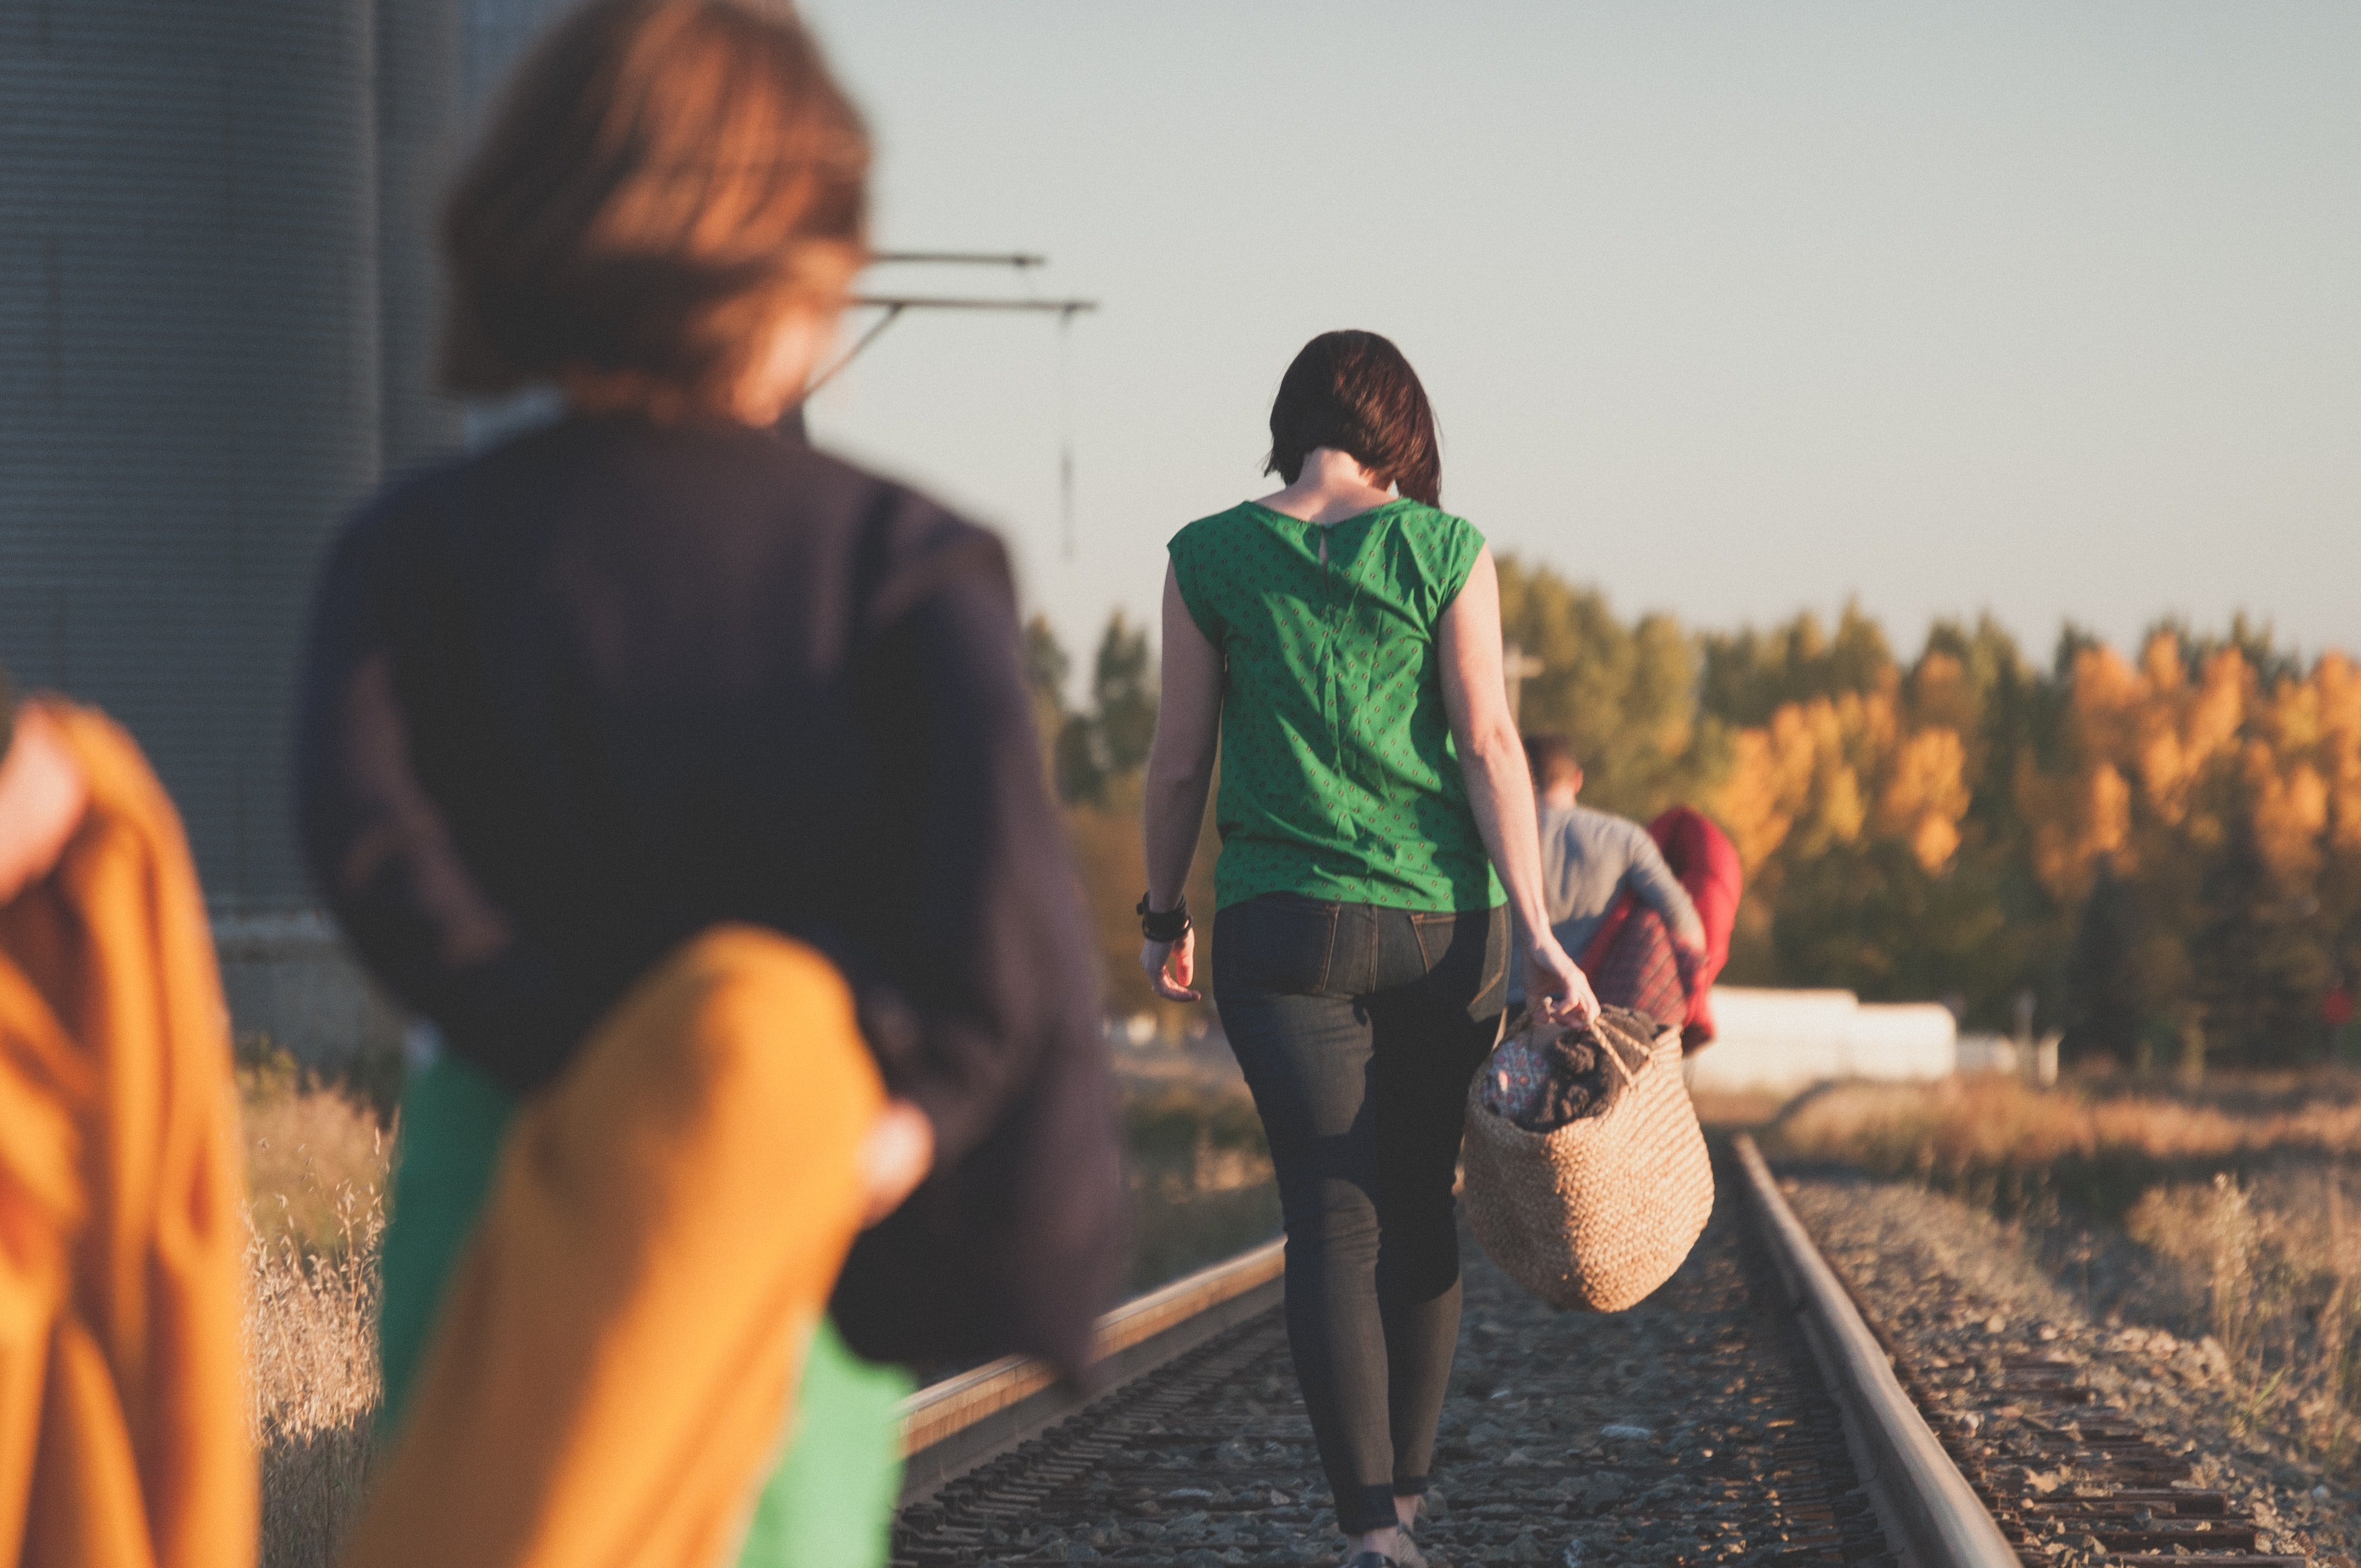 A woman in green walks along the railroad track behind a man and is followed by a child.